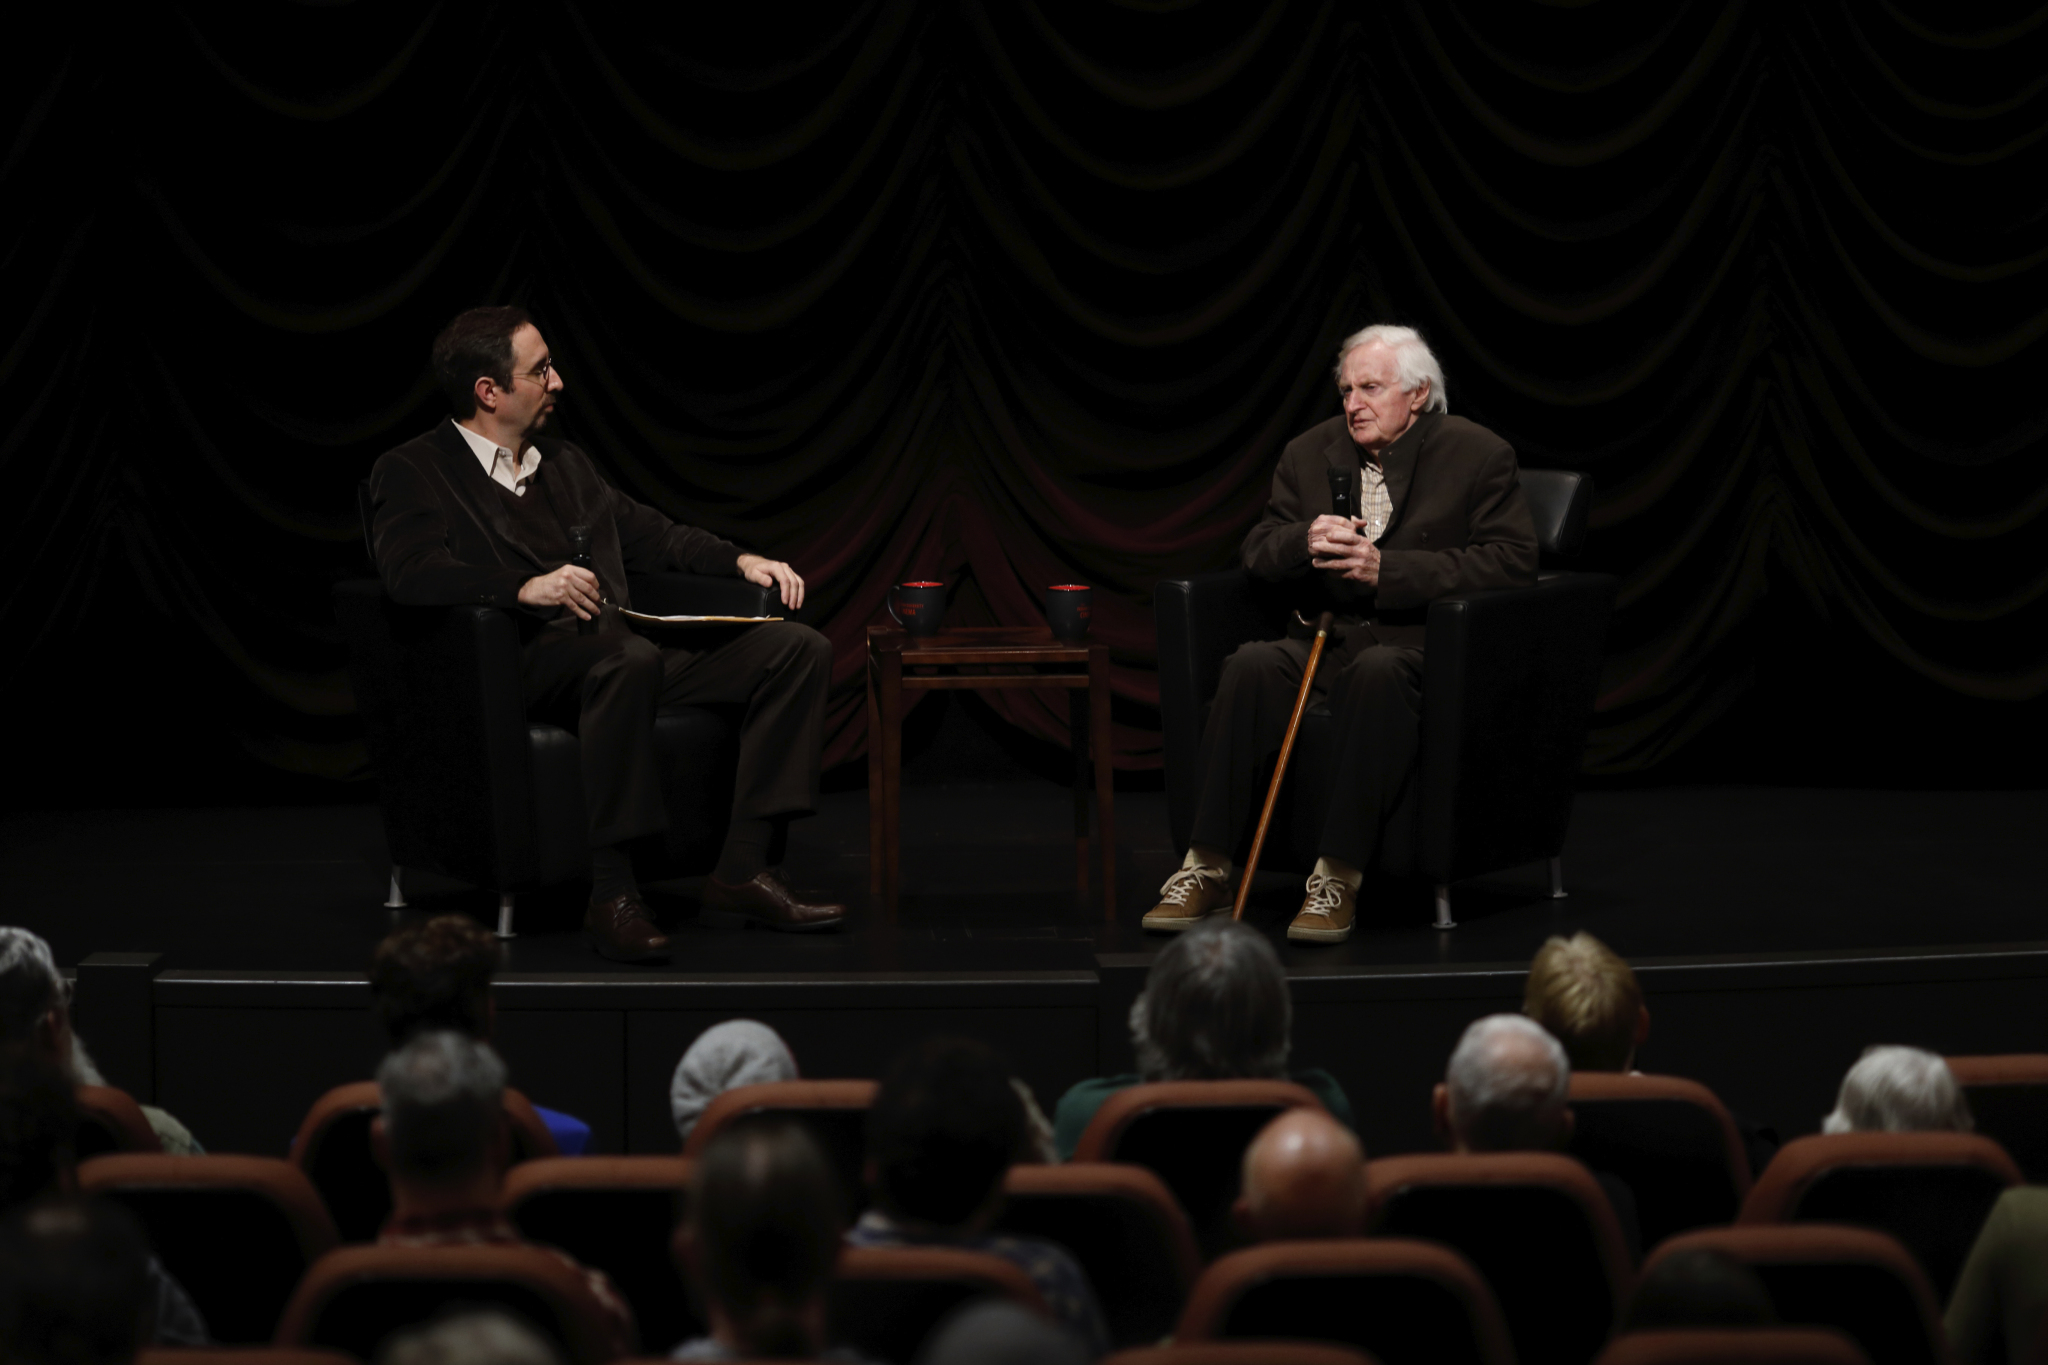 Craig Simpson and John Boorman on-stage during Jorgensen Guest Filmmaker Lecture on October 28, 2016.